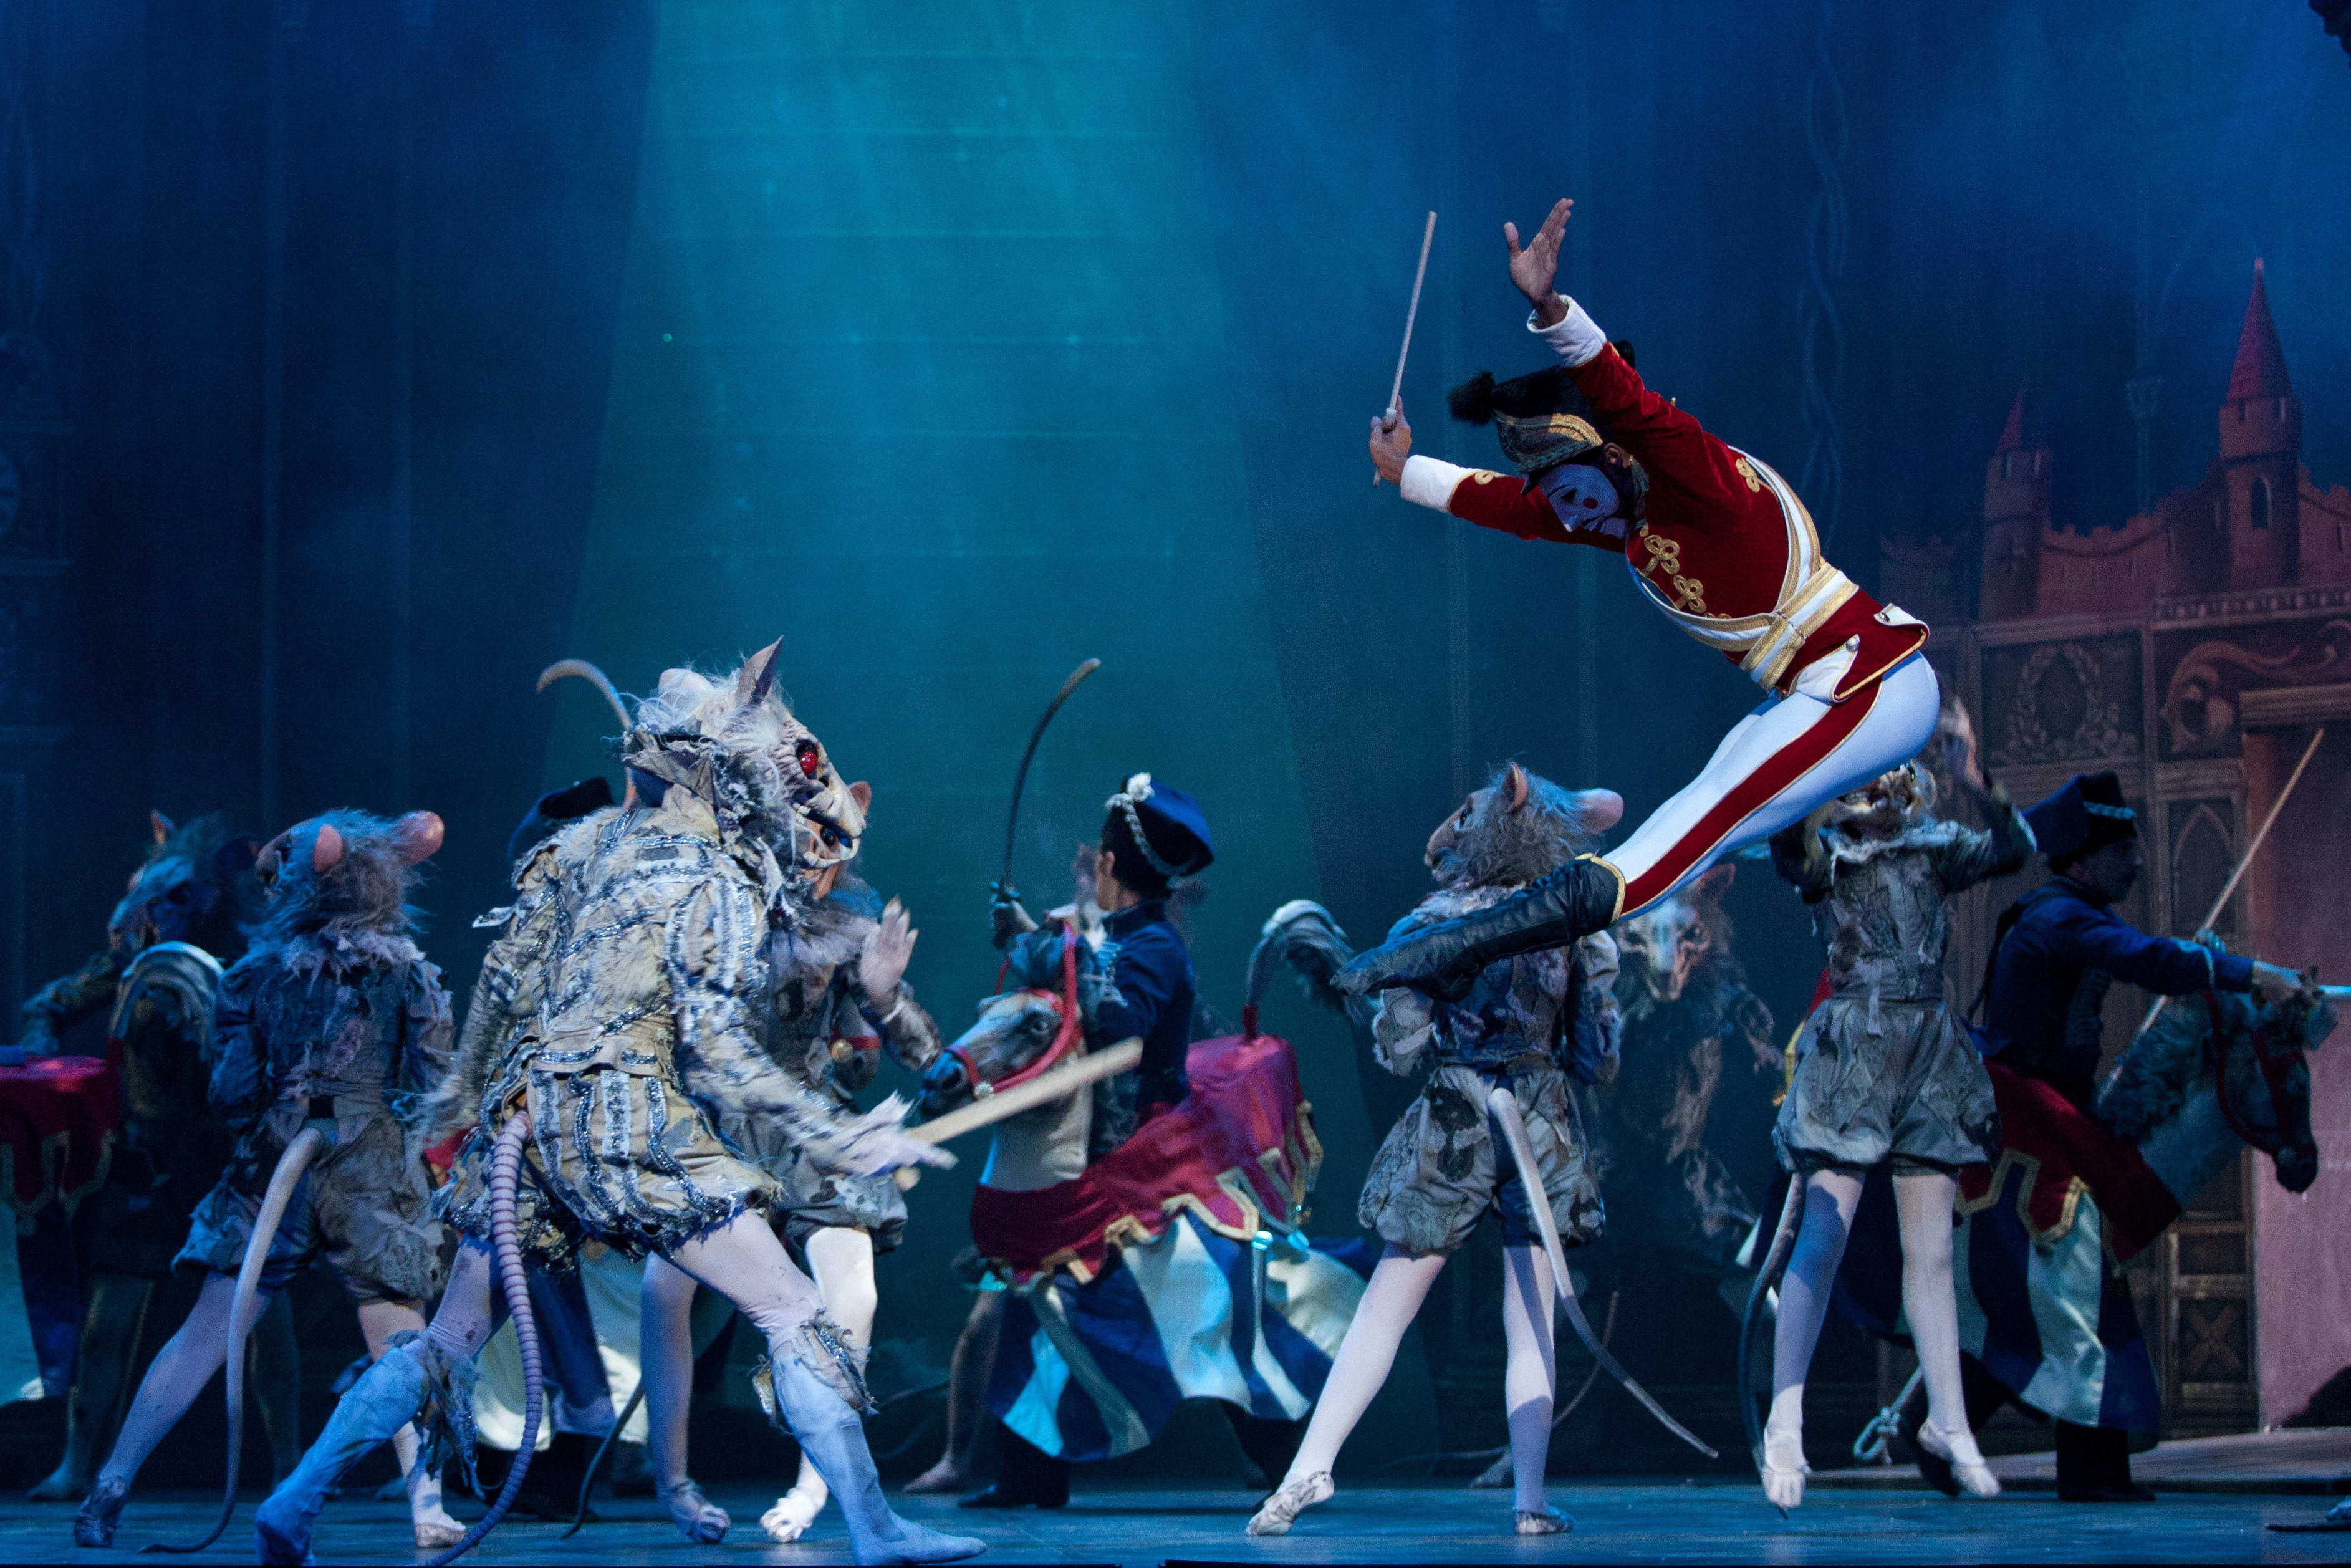 English National Ballet. Nutcracker at the London Coliseum. (Photography by ASH).